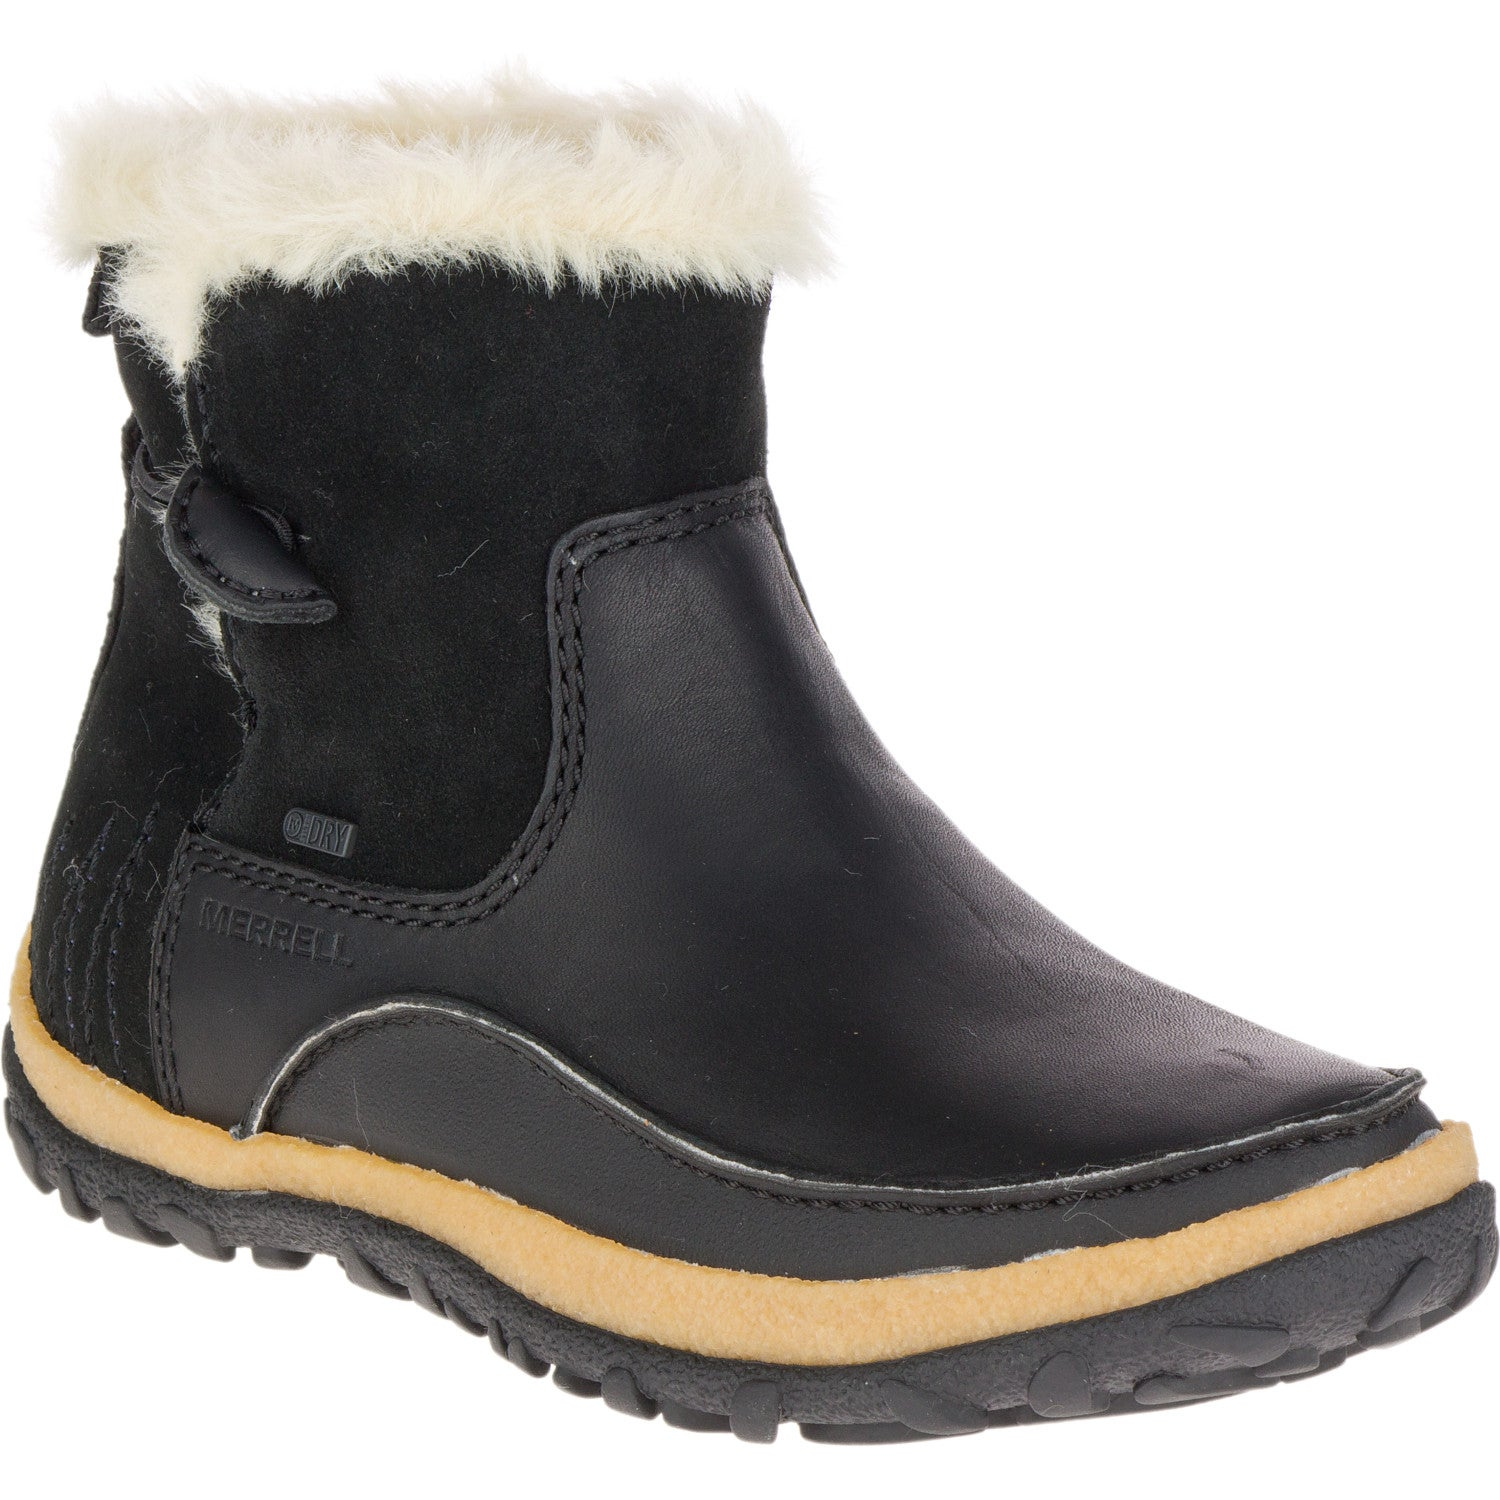 82d0521e2d Merrell Tremblant Pull On Polar WTPF Ladies Boots available from ...